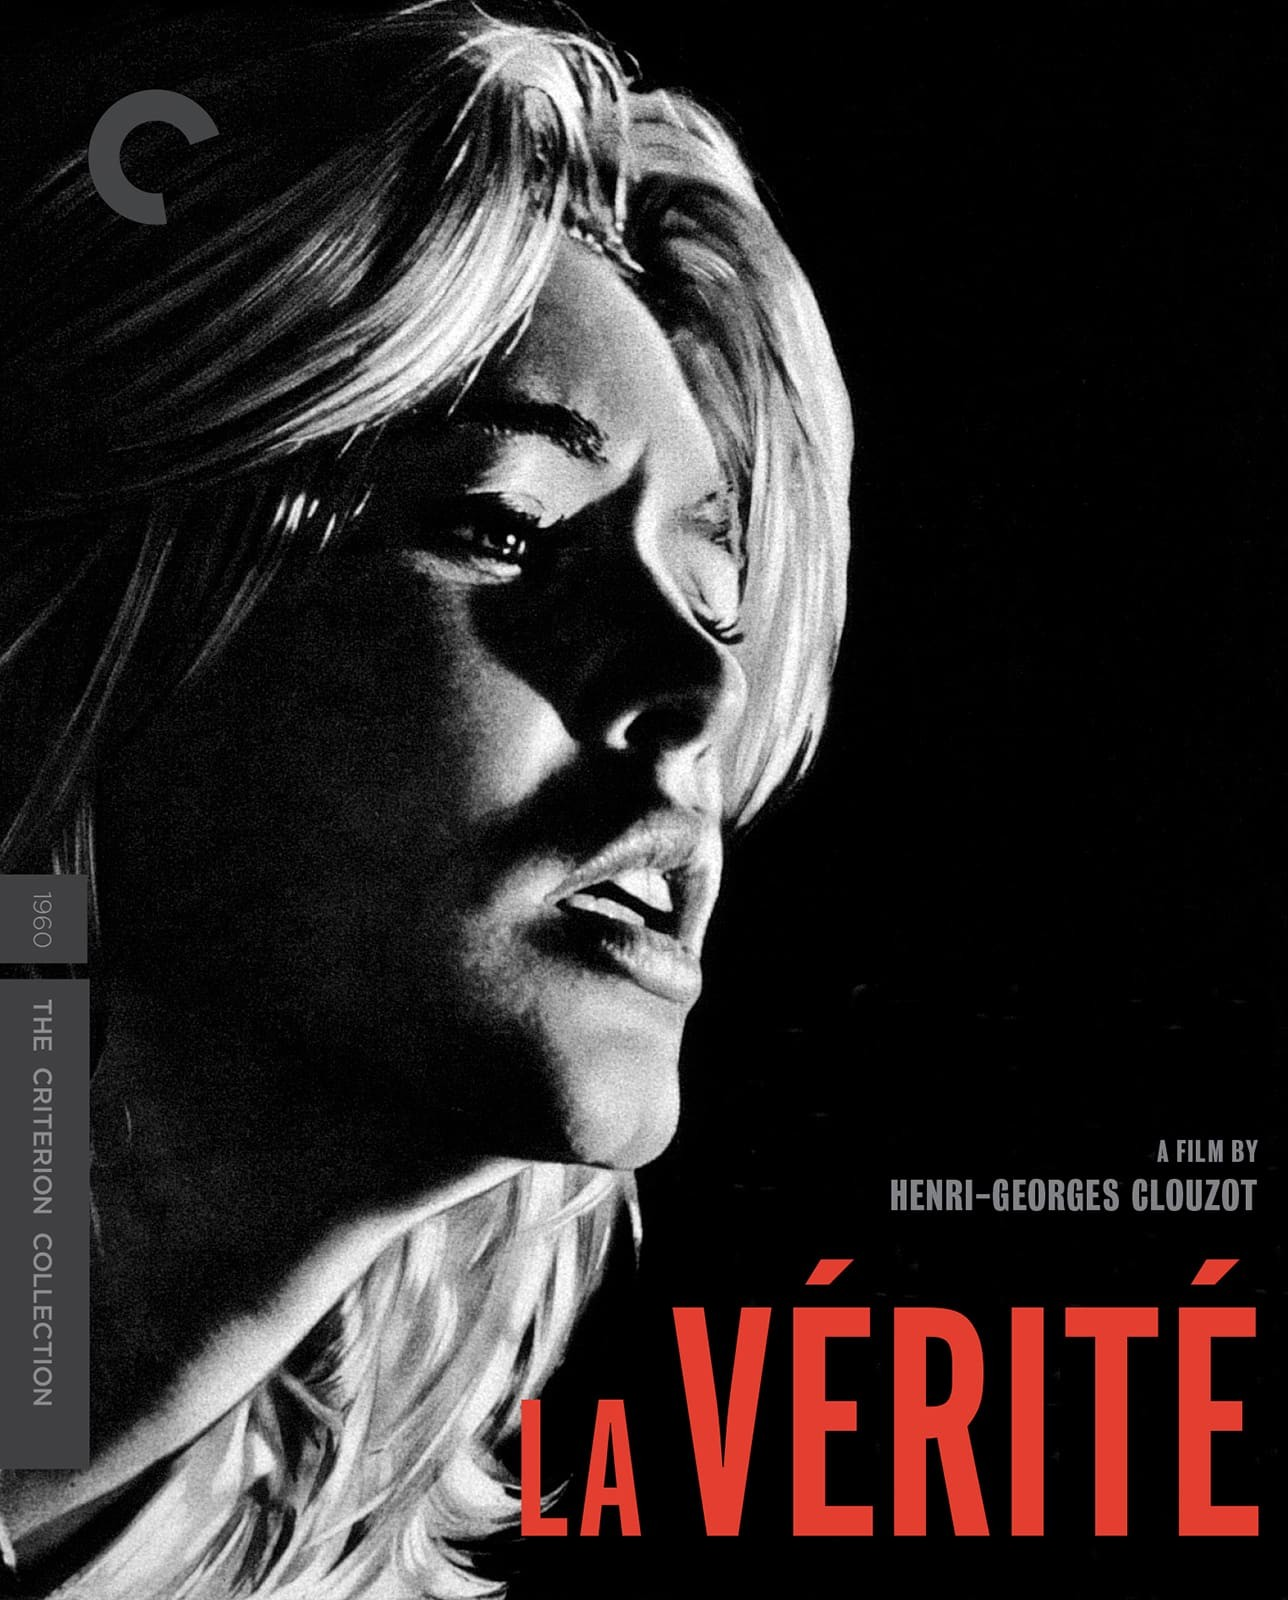 70707336df The opening of Henri-Georges Clouzot's La Vérité suggests something out a  Dreyer film about women placed on trial by men for heresy.